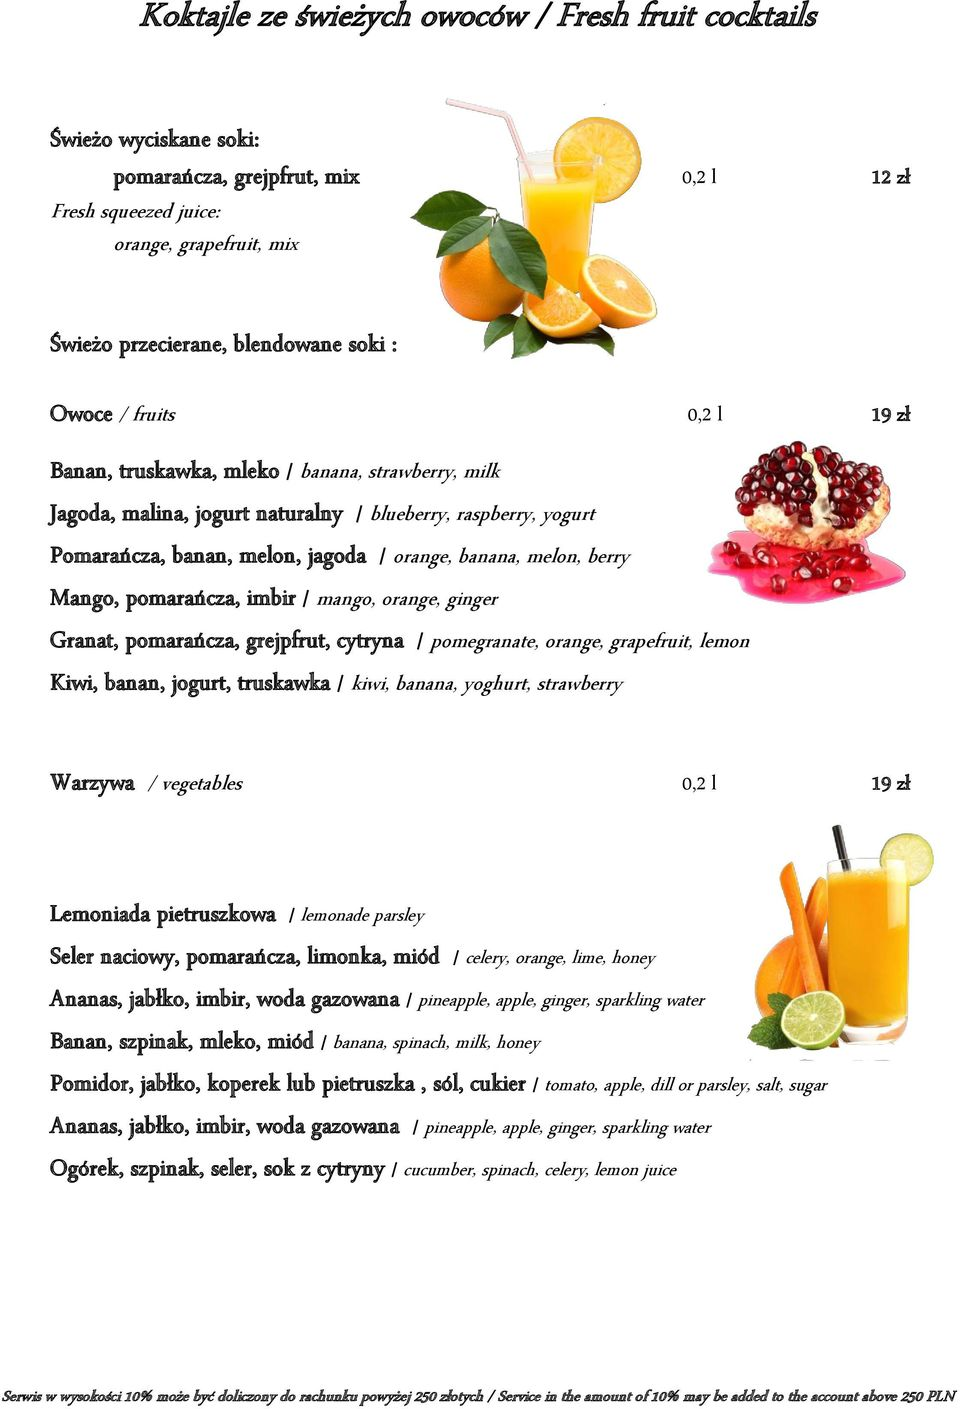 berry Mango, pomarańcza, imbir / mango, orange, ginger Granat, pomarańcza, grejpfrut, cytryna / pomegranate, orange, grapefruit, lemon Kiwi, banan, jogurt, truskawka / kiwi, banana, yoghurt,